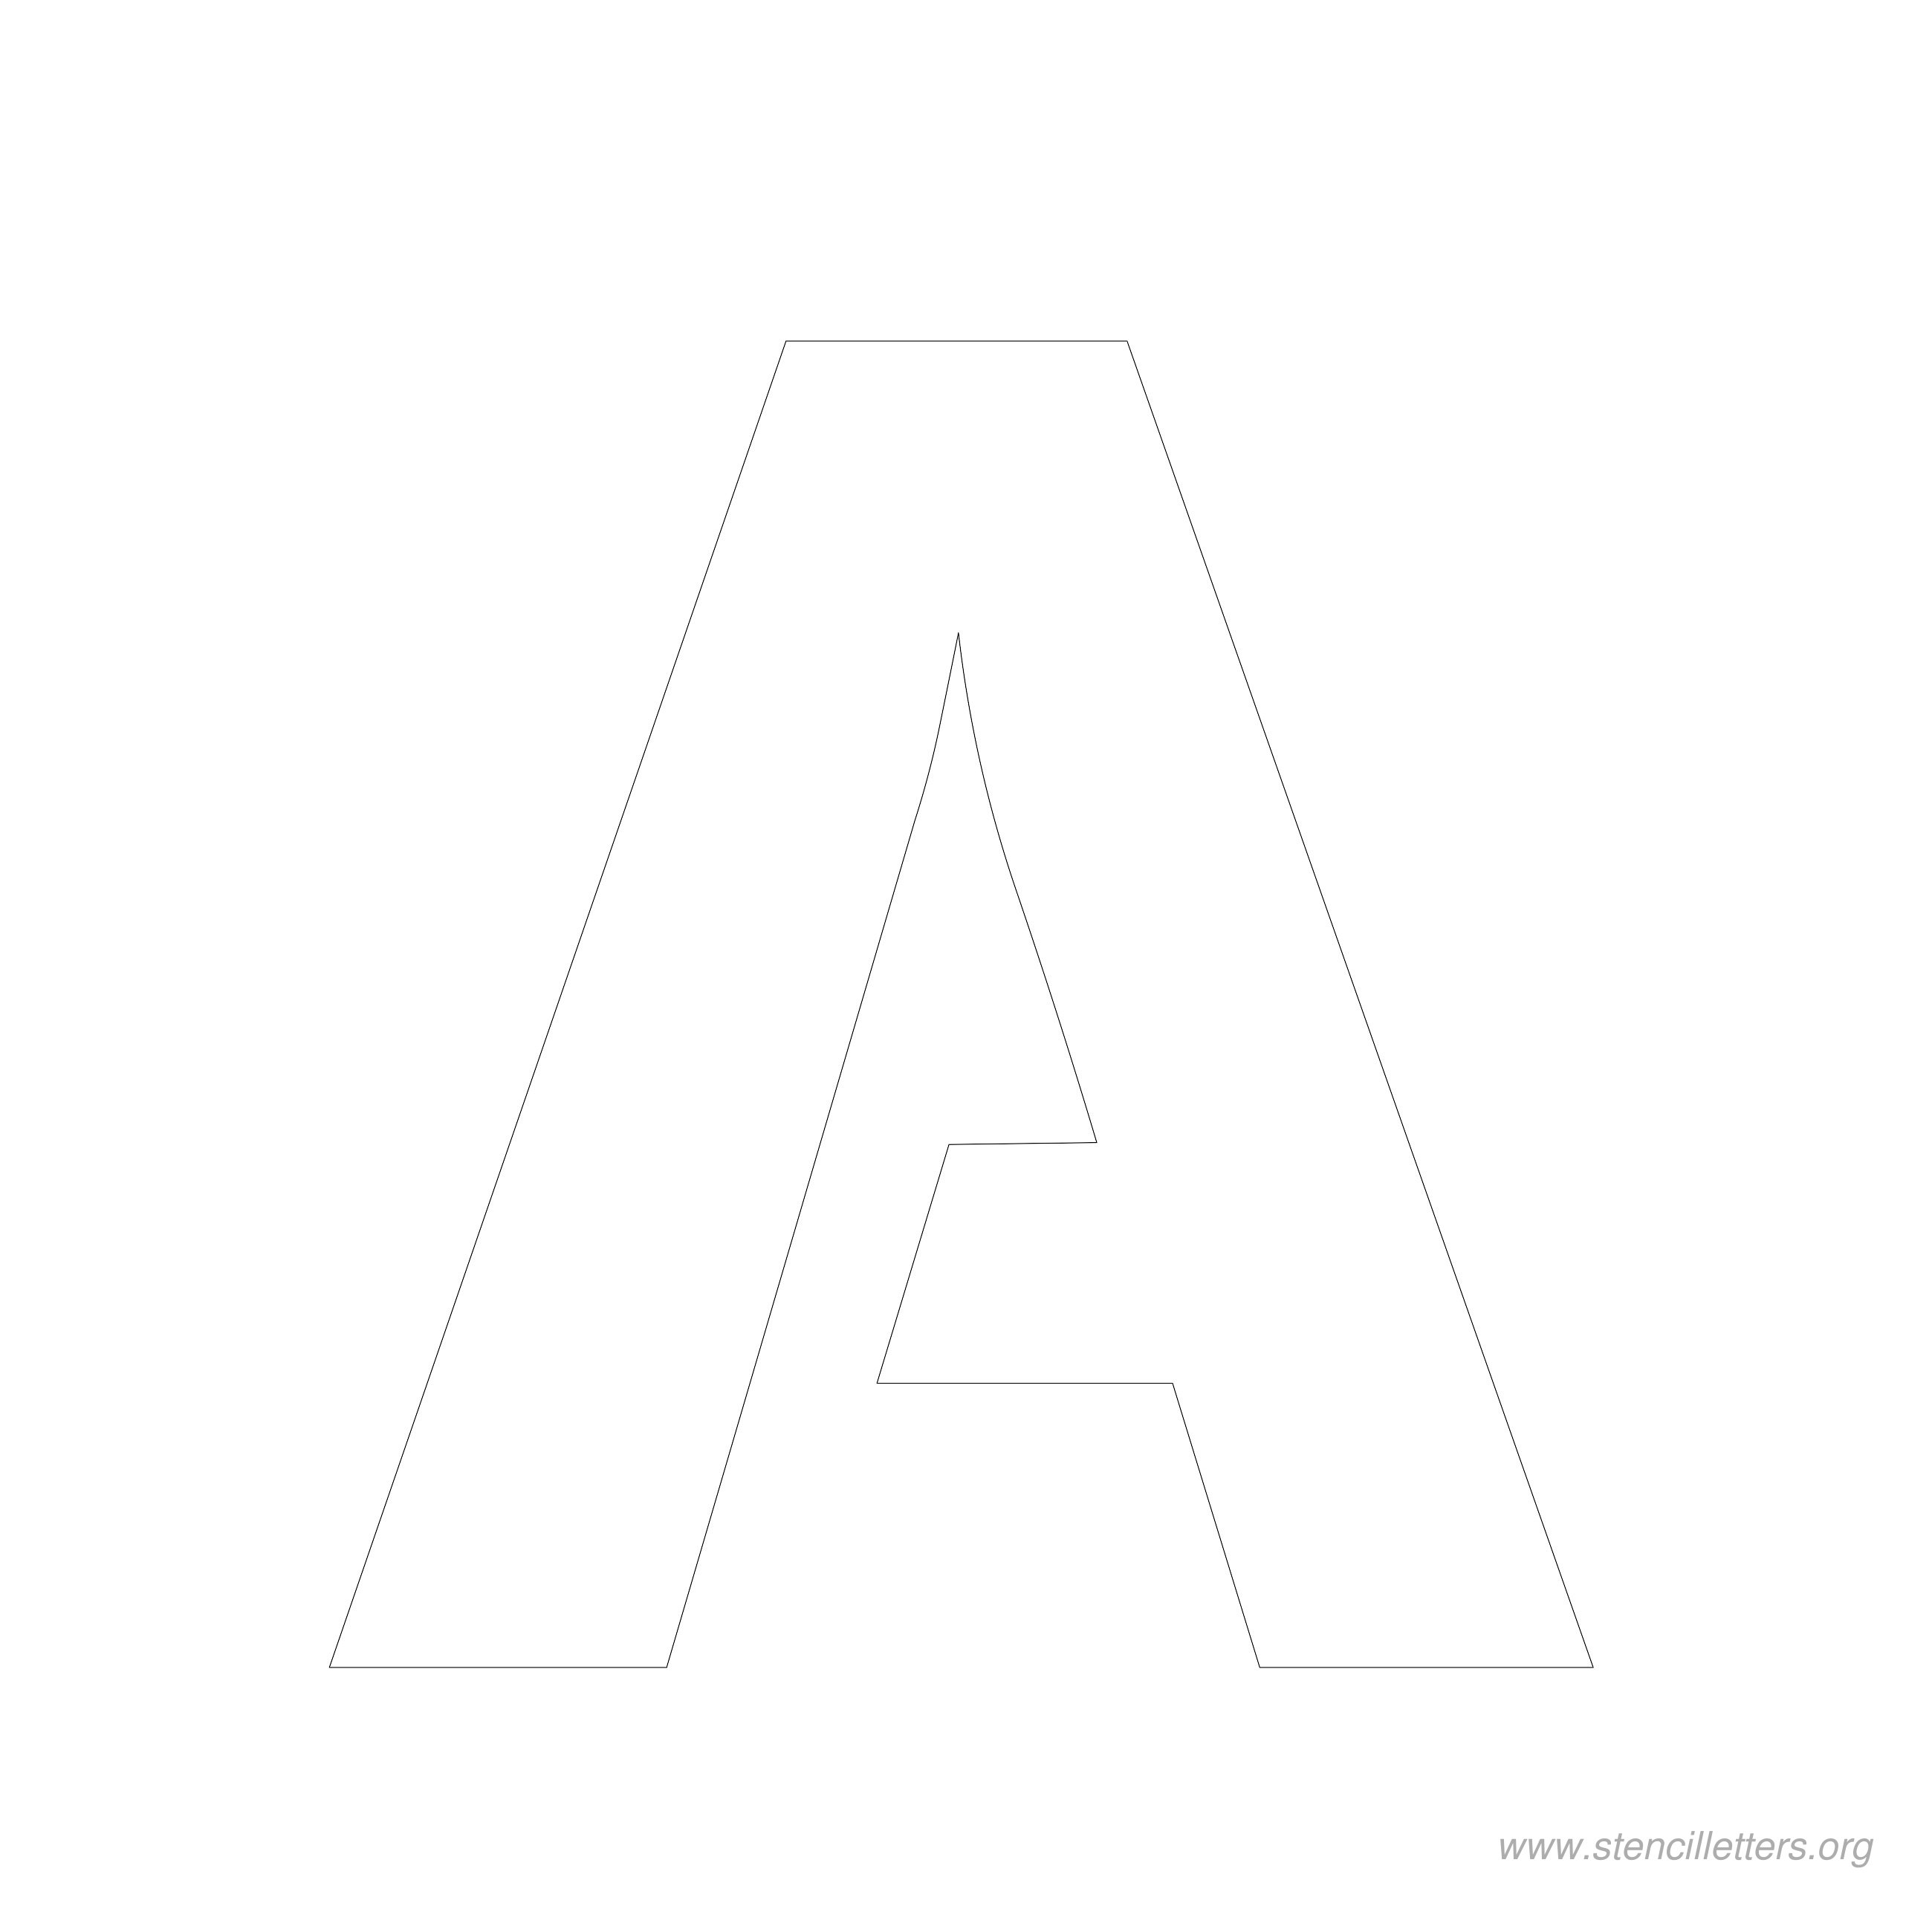 Worksheet Letter A Printable 6 inch stencil letters org letter a